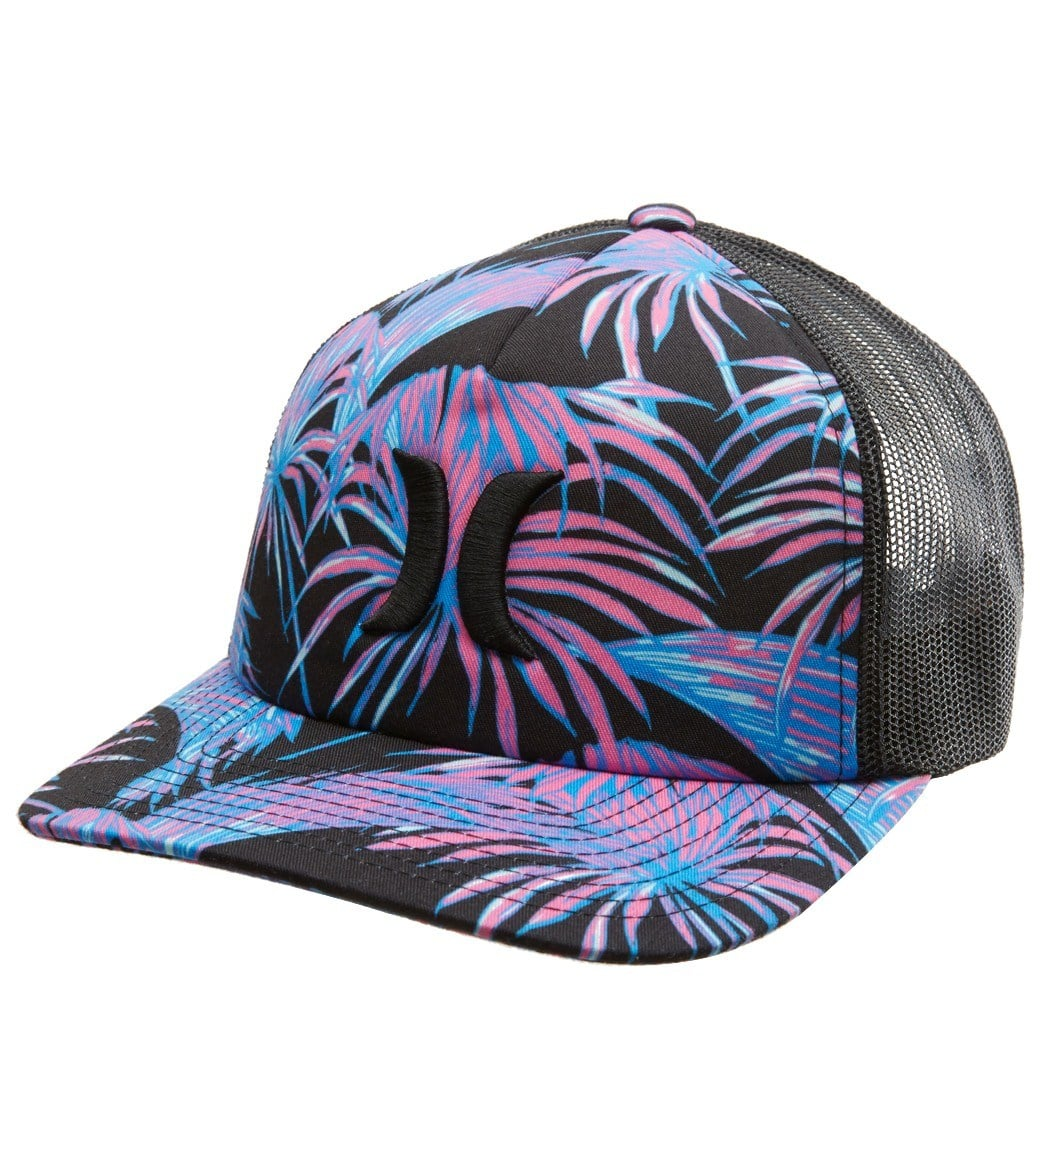 3f2f40902e8 Hurley Women s Koko Trucker Hat at SwimOutlet.com - Free Shipping